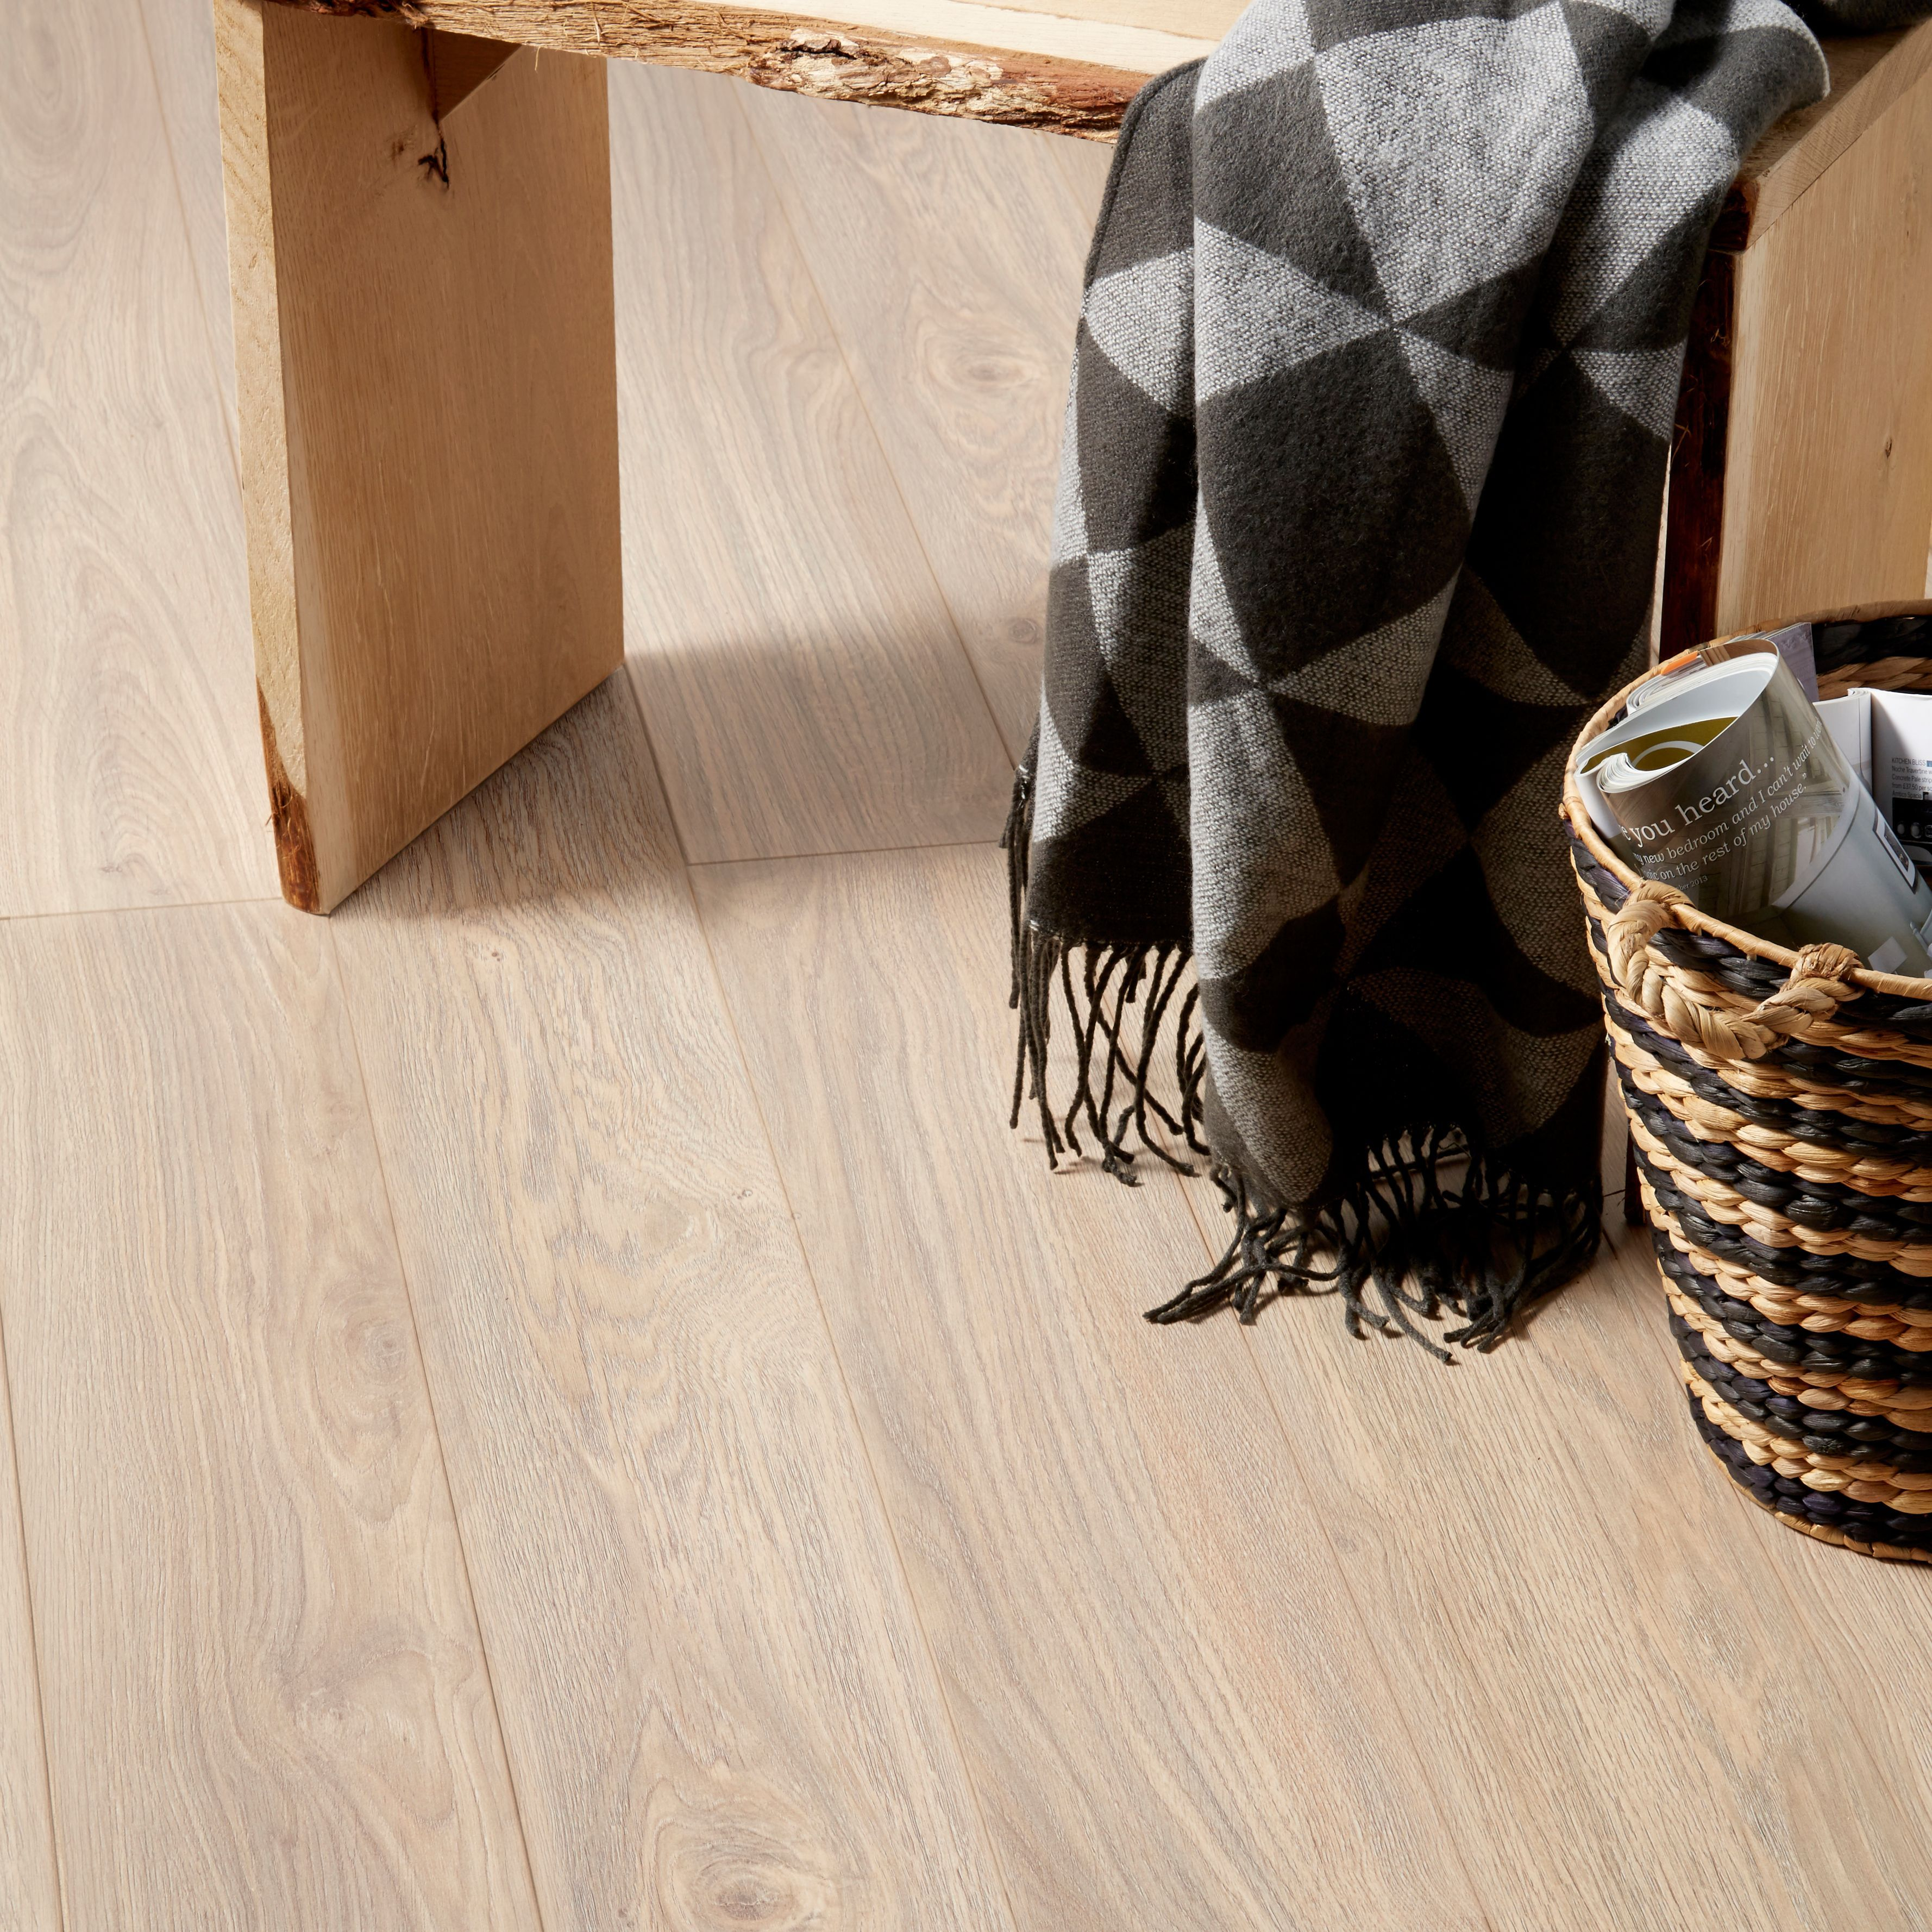 Gawler Natural Oak Effect Laminate Flooring Sample Departments Diy At B Amp Q Laminate Flooring Goodhome Laminate Flooring Colors